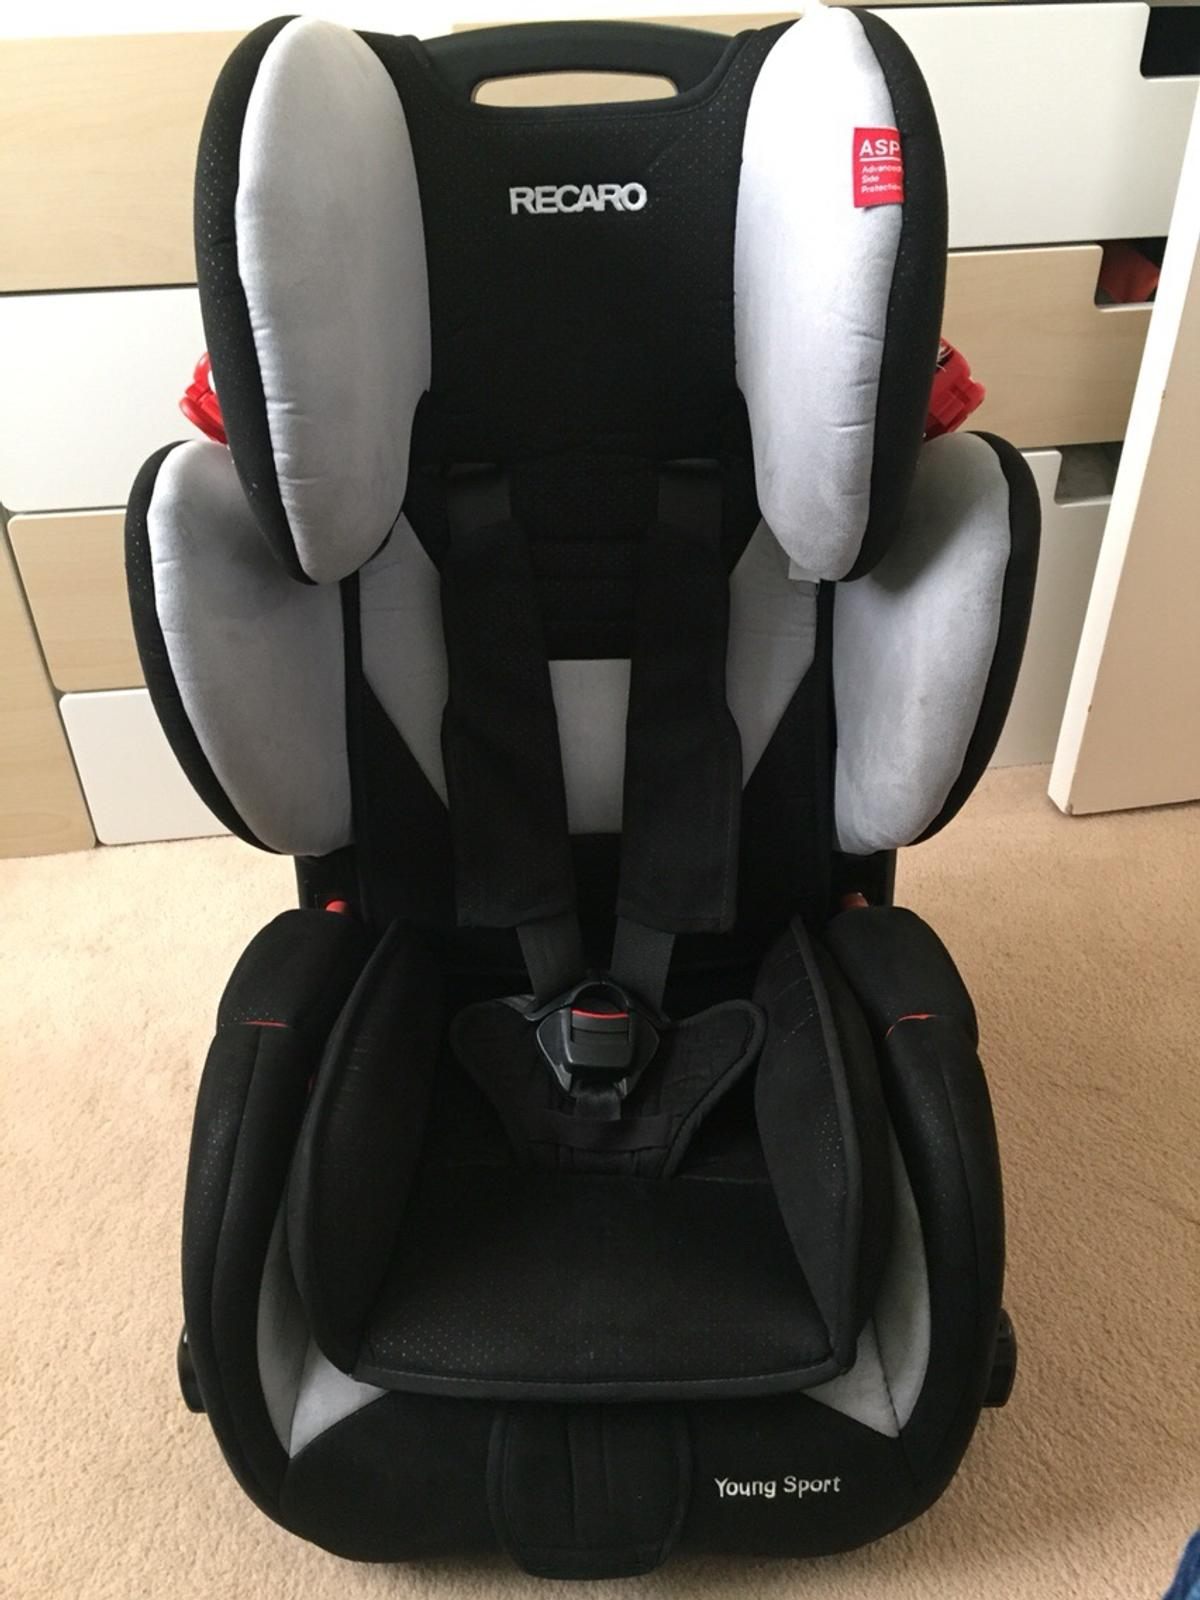 Recaro Baby Seat Parts Recaro Young Sport Car Seat In Tn13 Sevenoaks Für 75 00